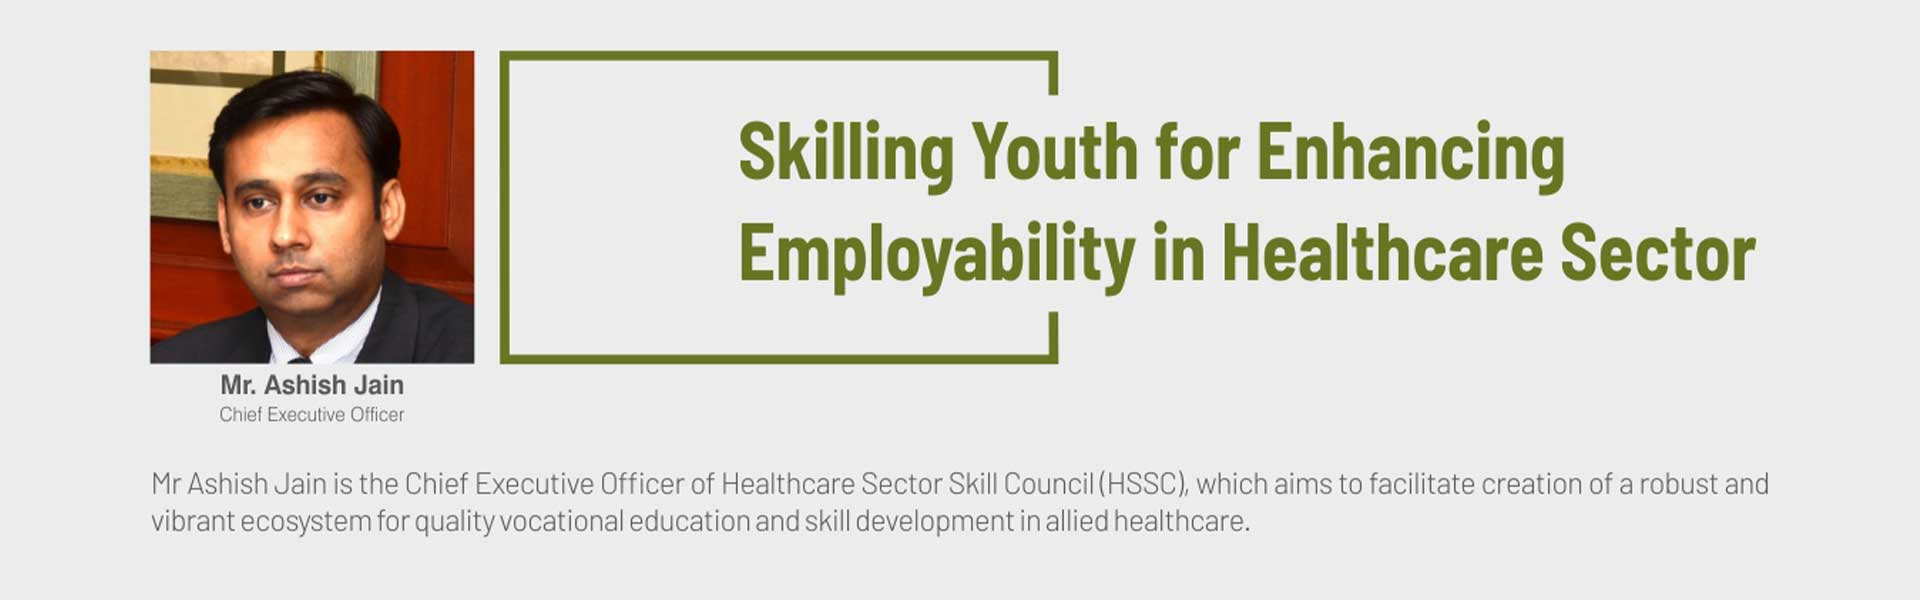 Skilling Youth For Enhancing Employability in Healthcare Sector